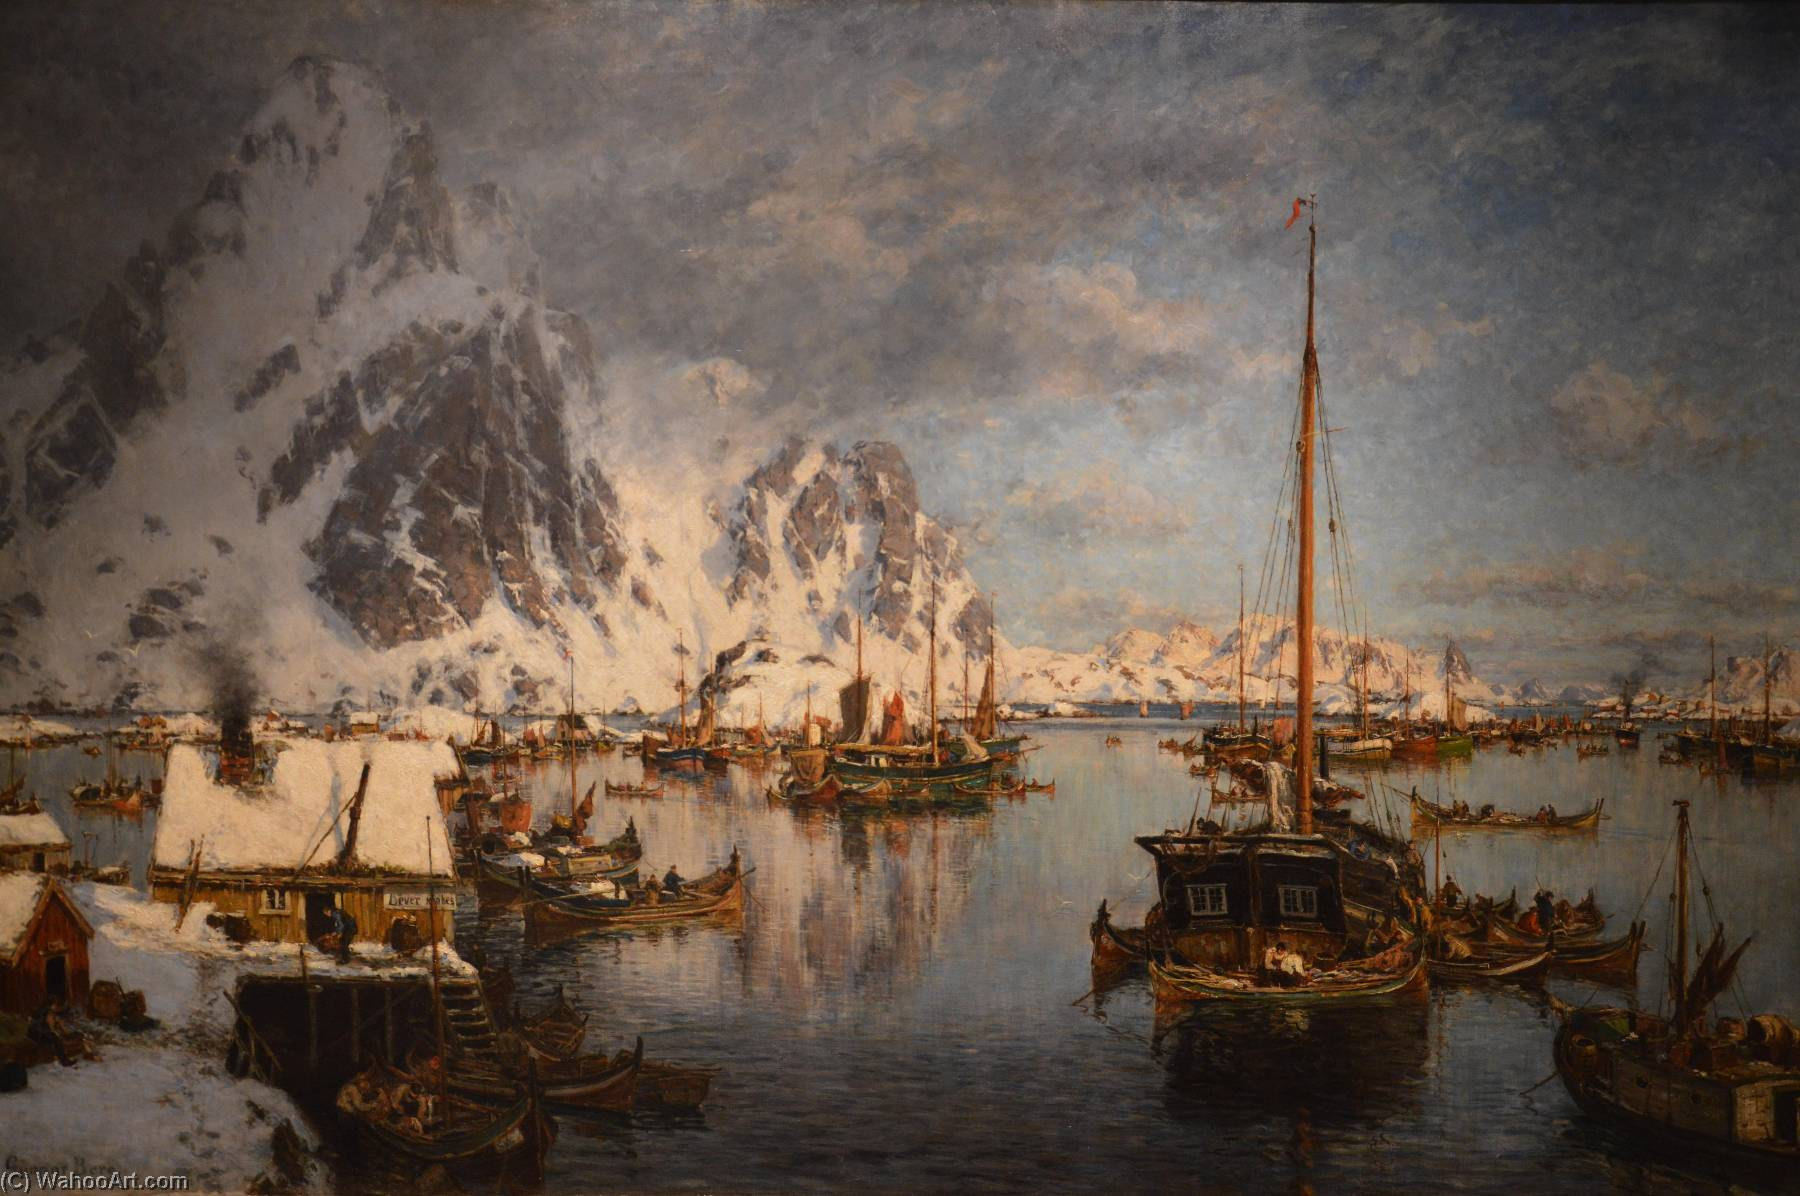 Fra Svolvær, Oil On Canvas by Gunnar Berg